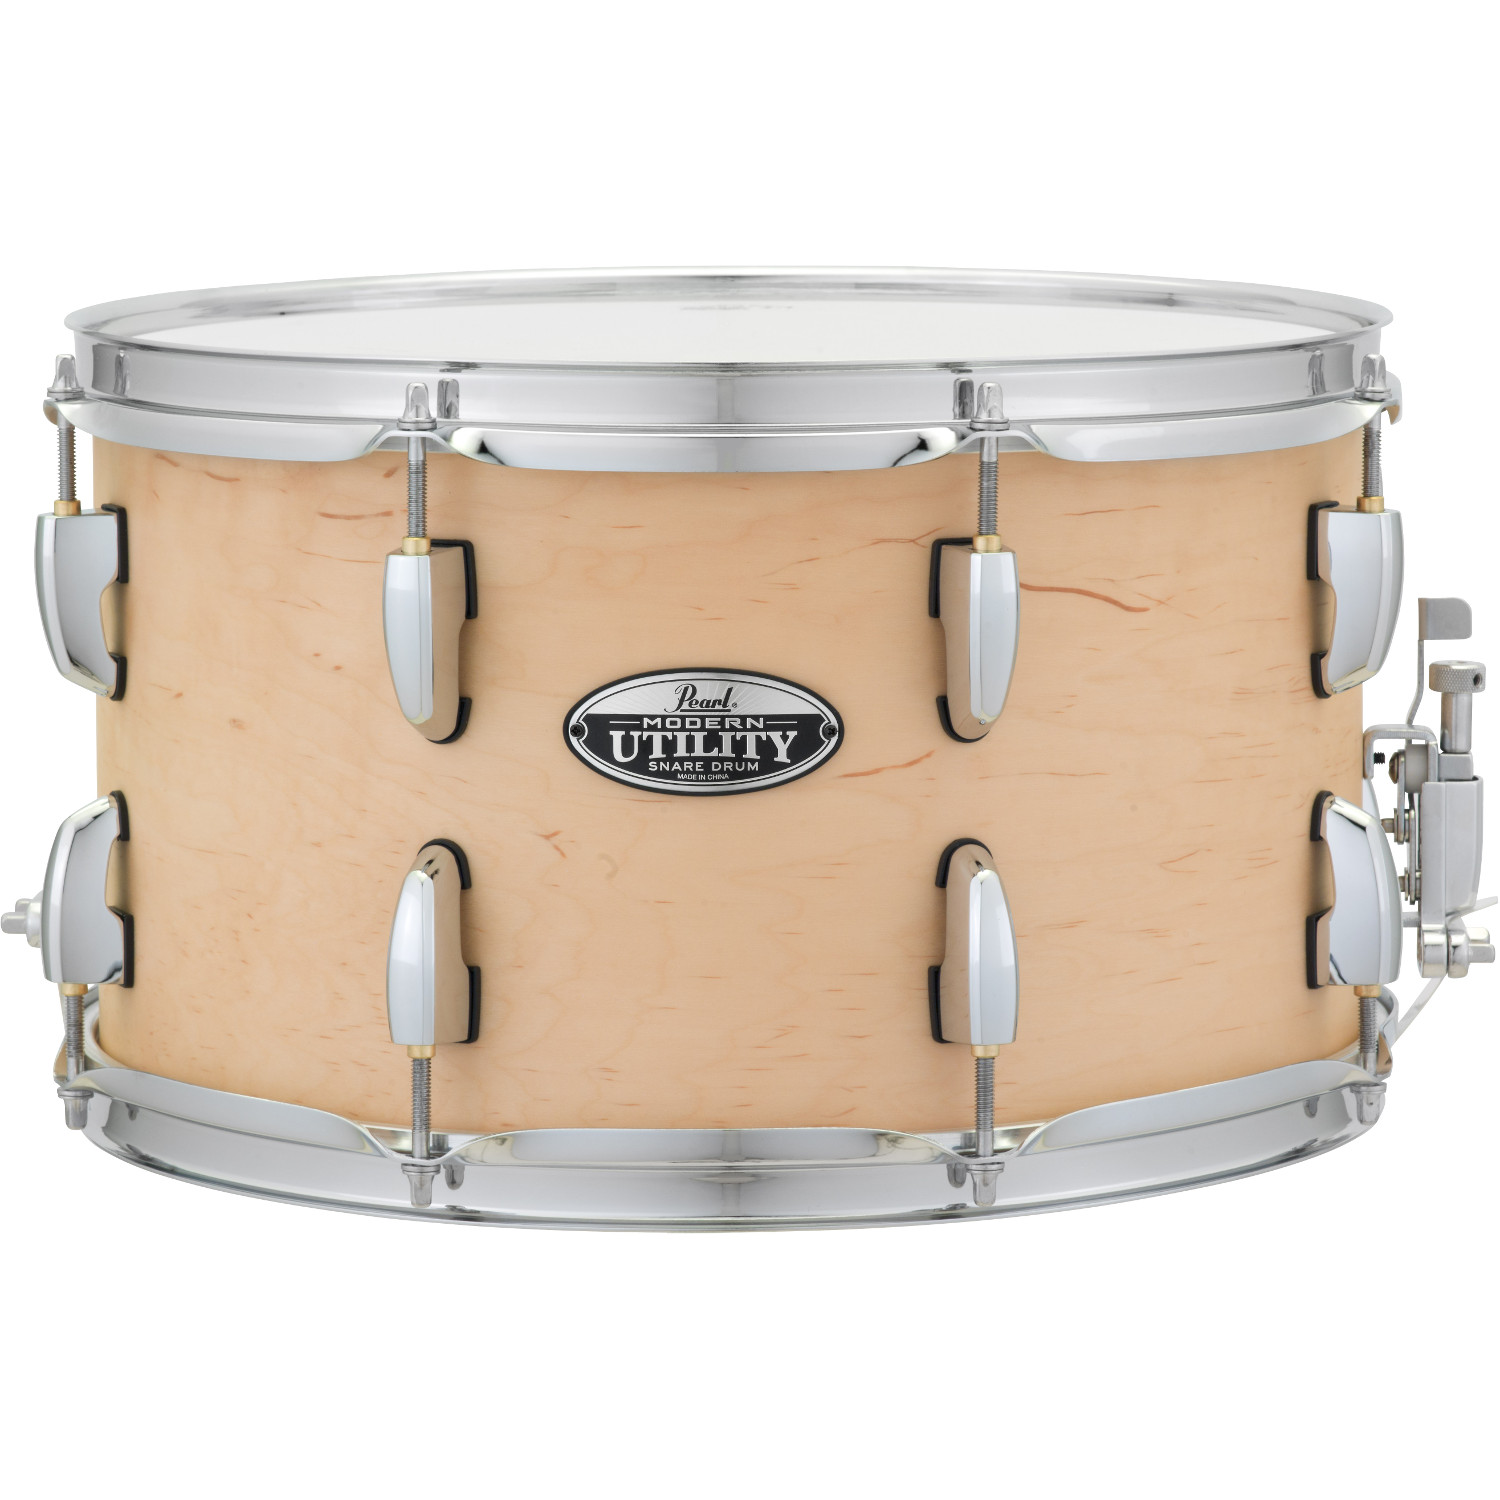 Pearl MUS1480M|C224 Modern Utility 14 x 8 Zoll Snare Drum Natural